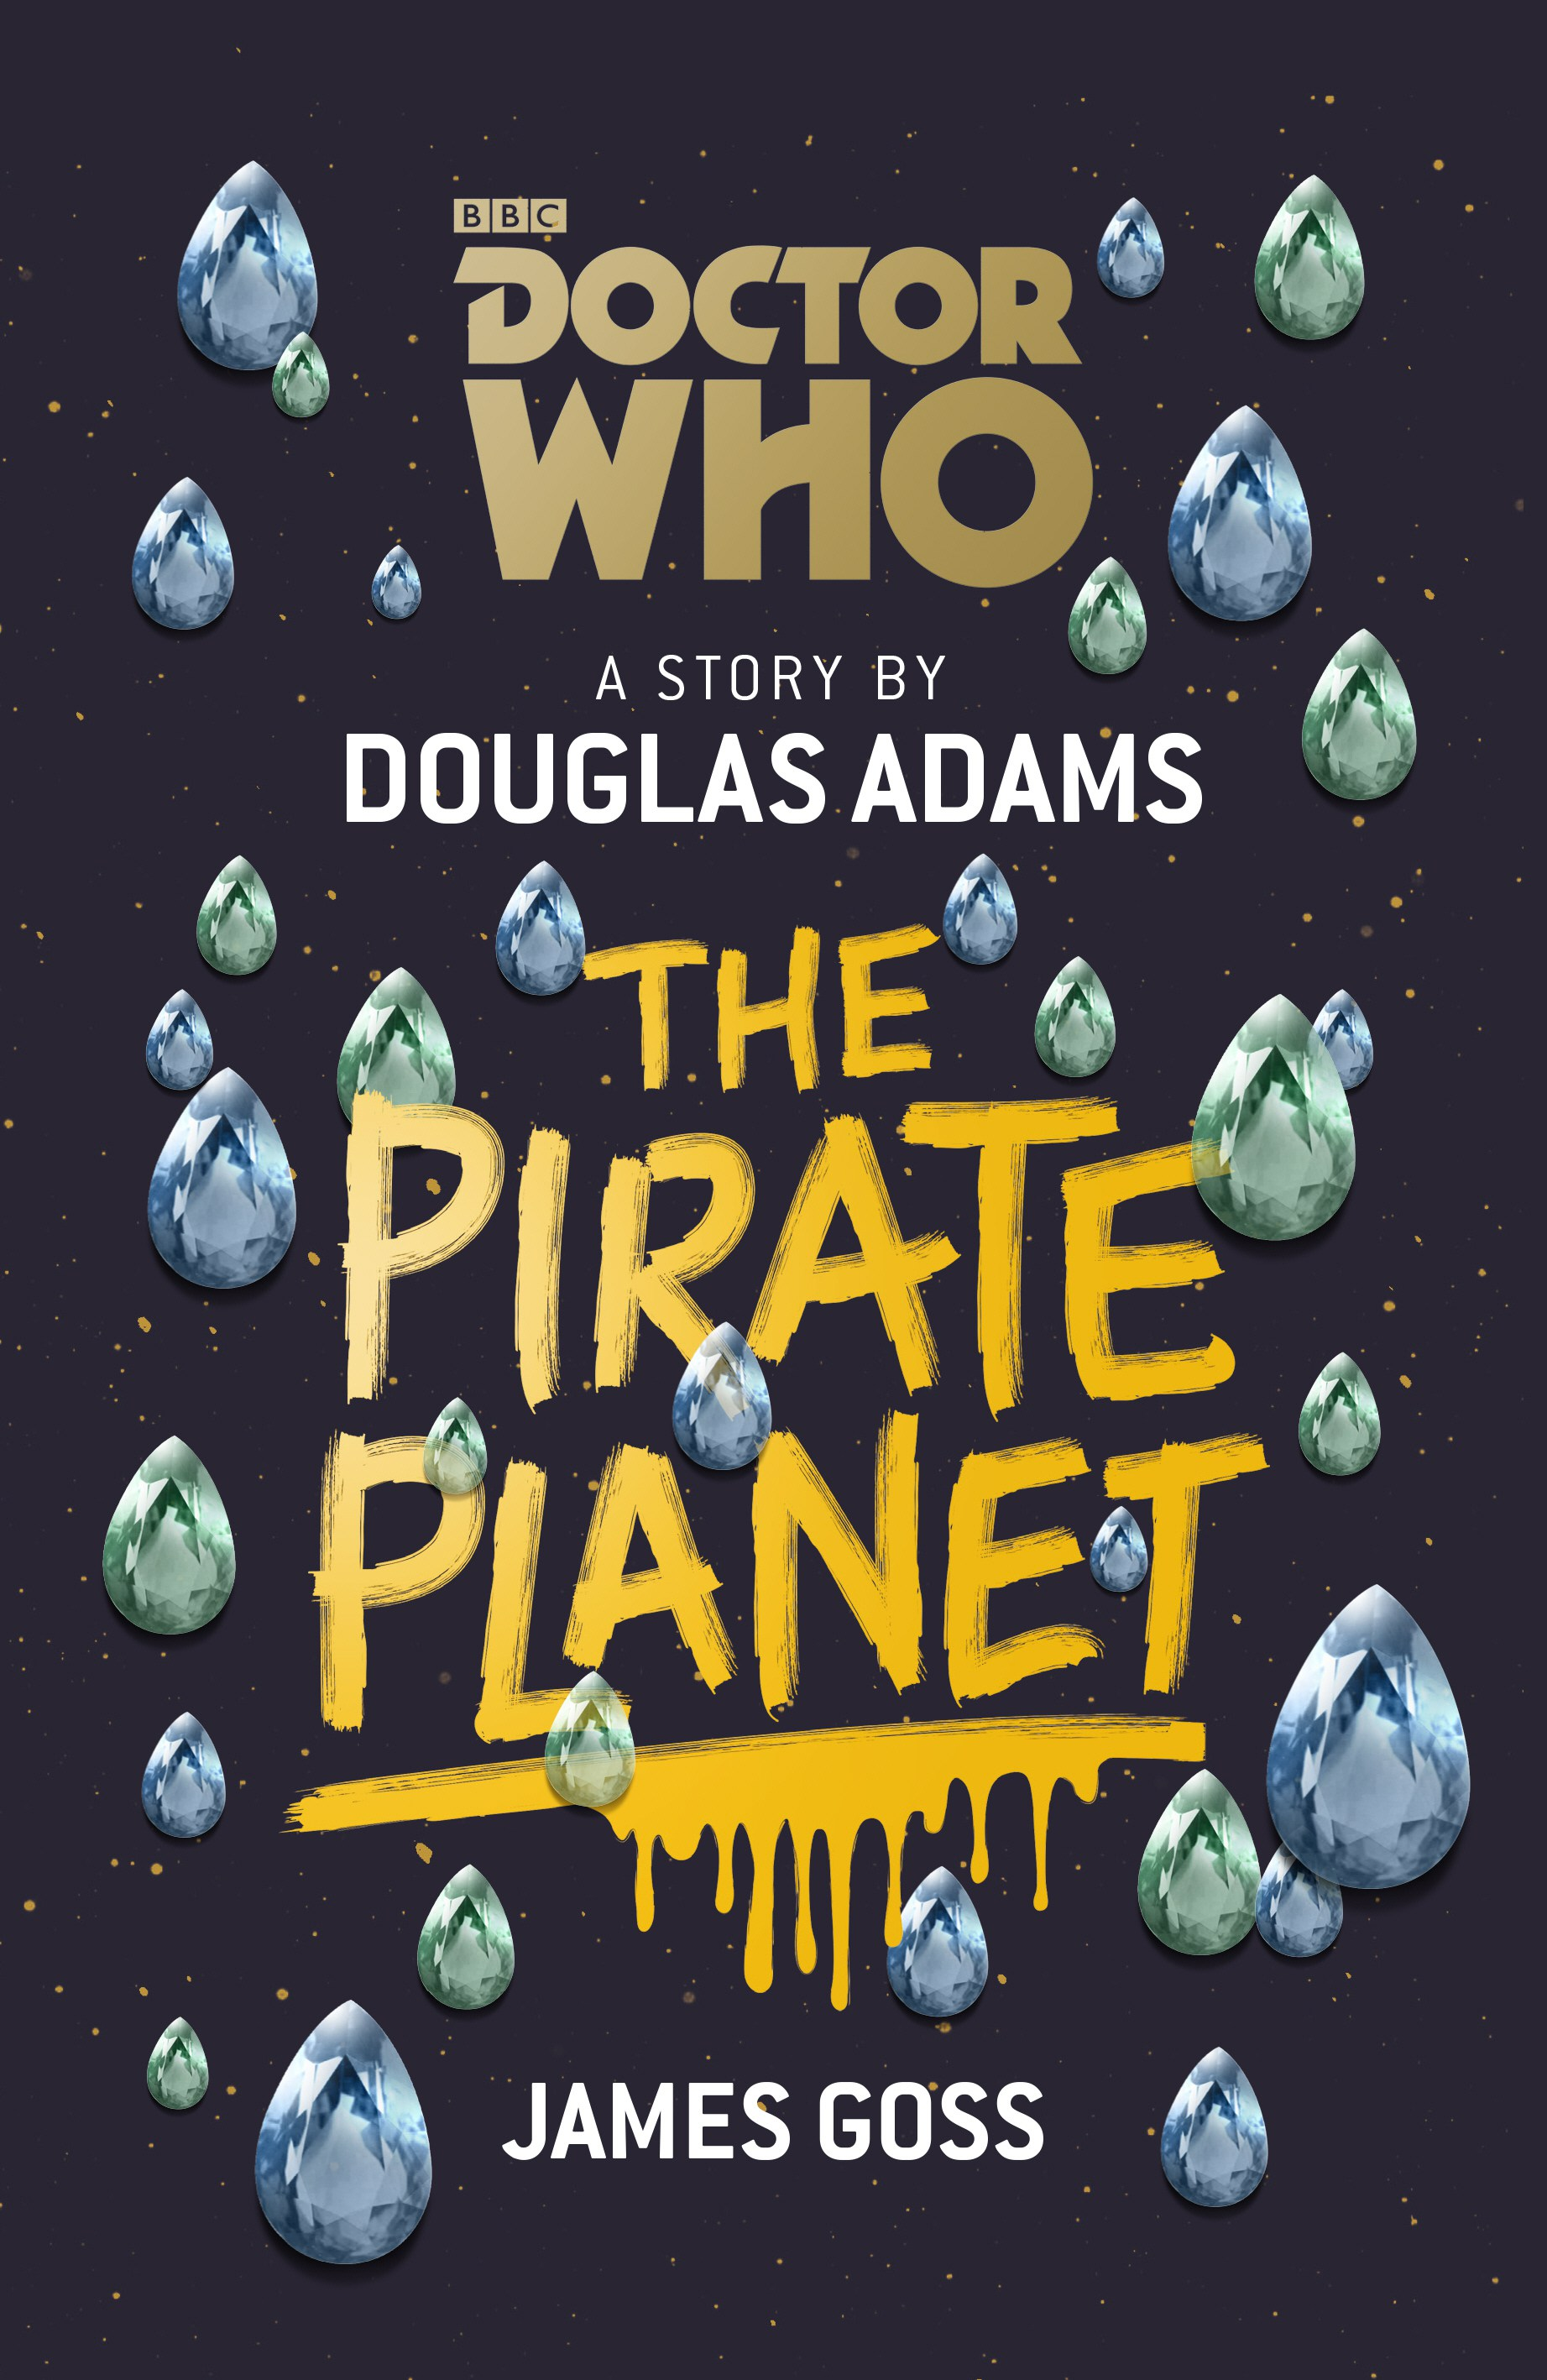 Friday Reads: Doctor Who: The Pirate Planet by Douglas Adams & James Goss